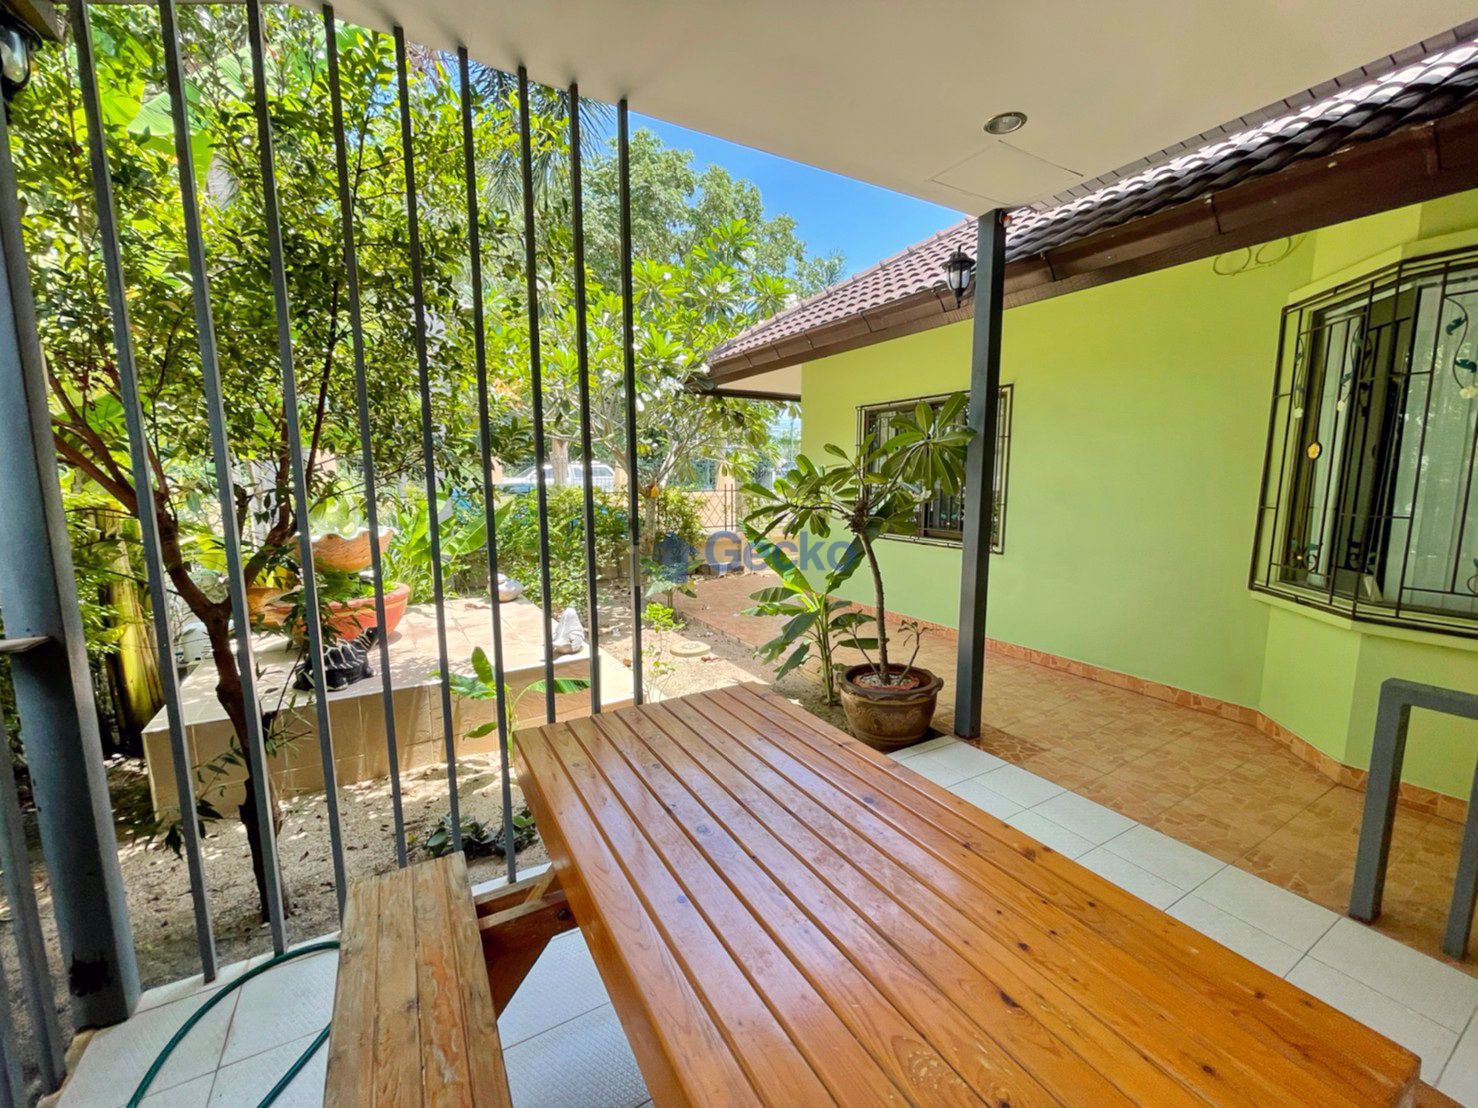 Picture of 3 Bedrooms bed in House in Hill Side in East Pattaya H009318